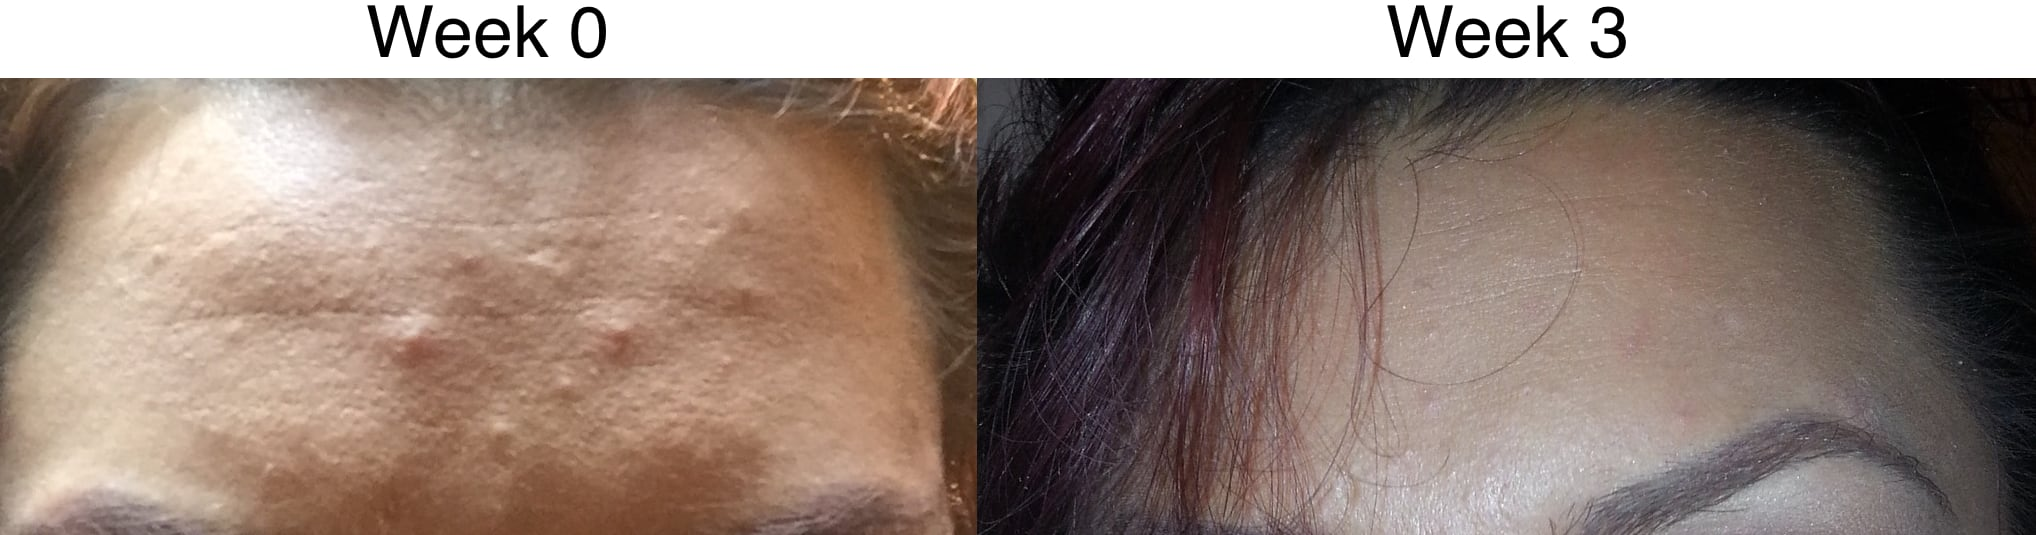 Clear Skin Result 1